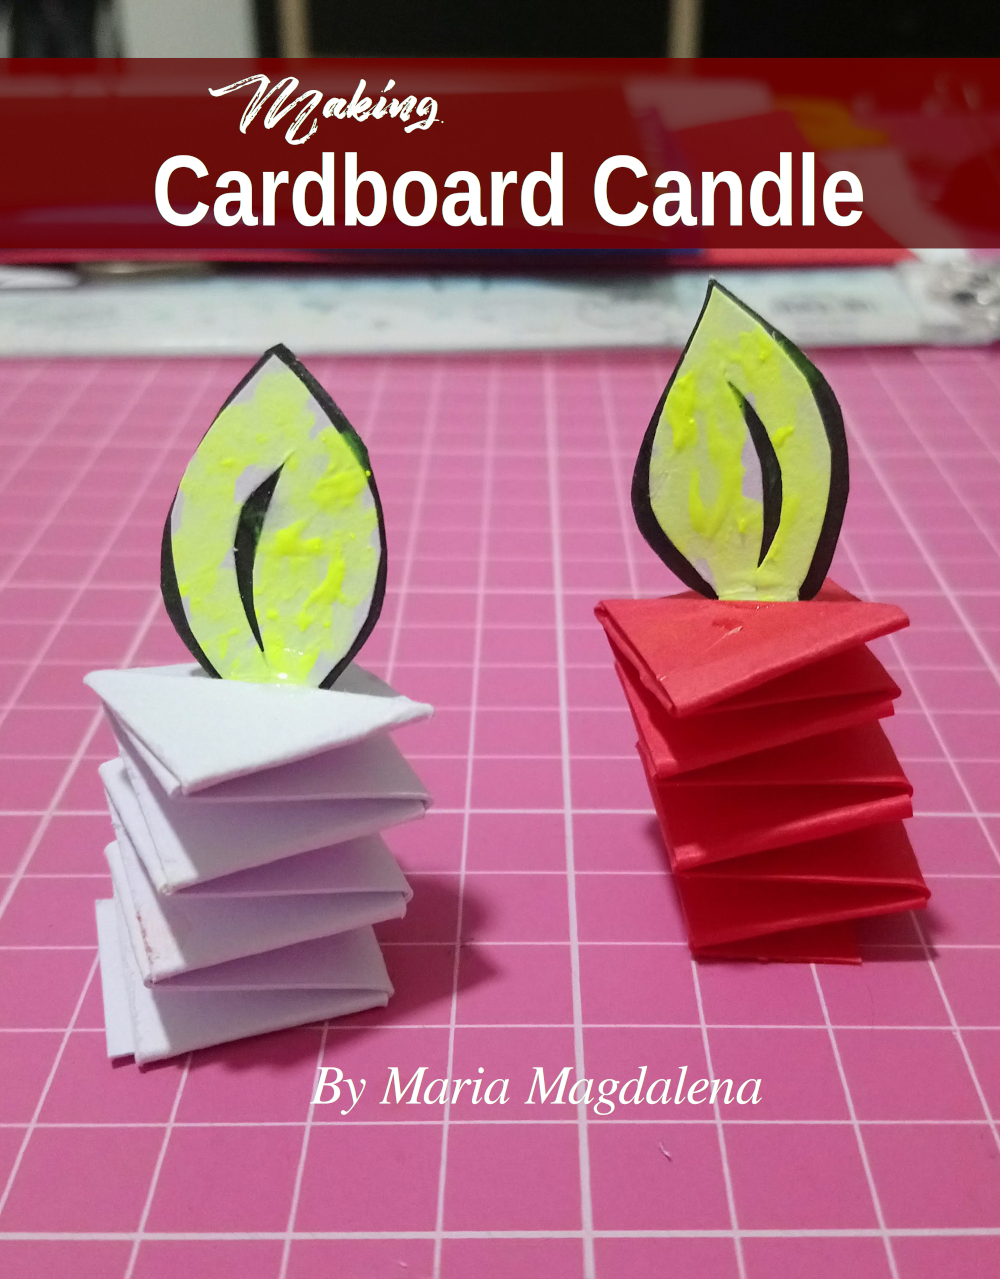 How to make cardboard candle for Christmas decoration